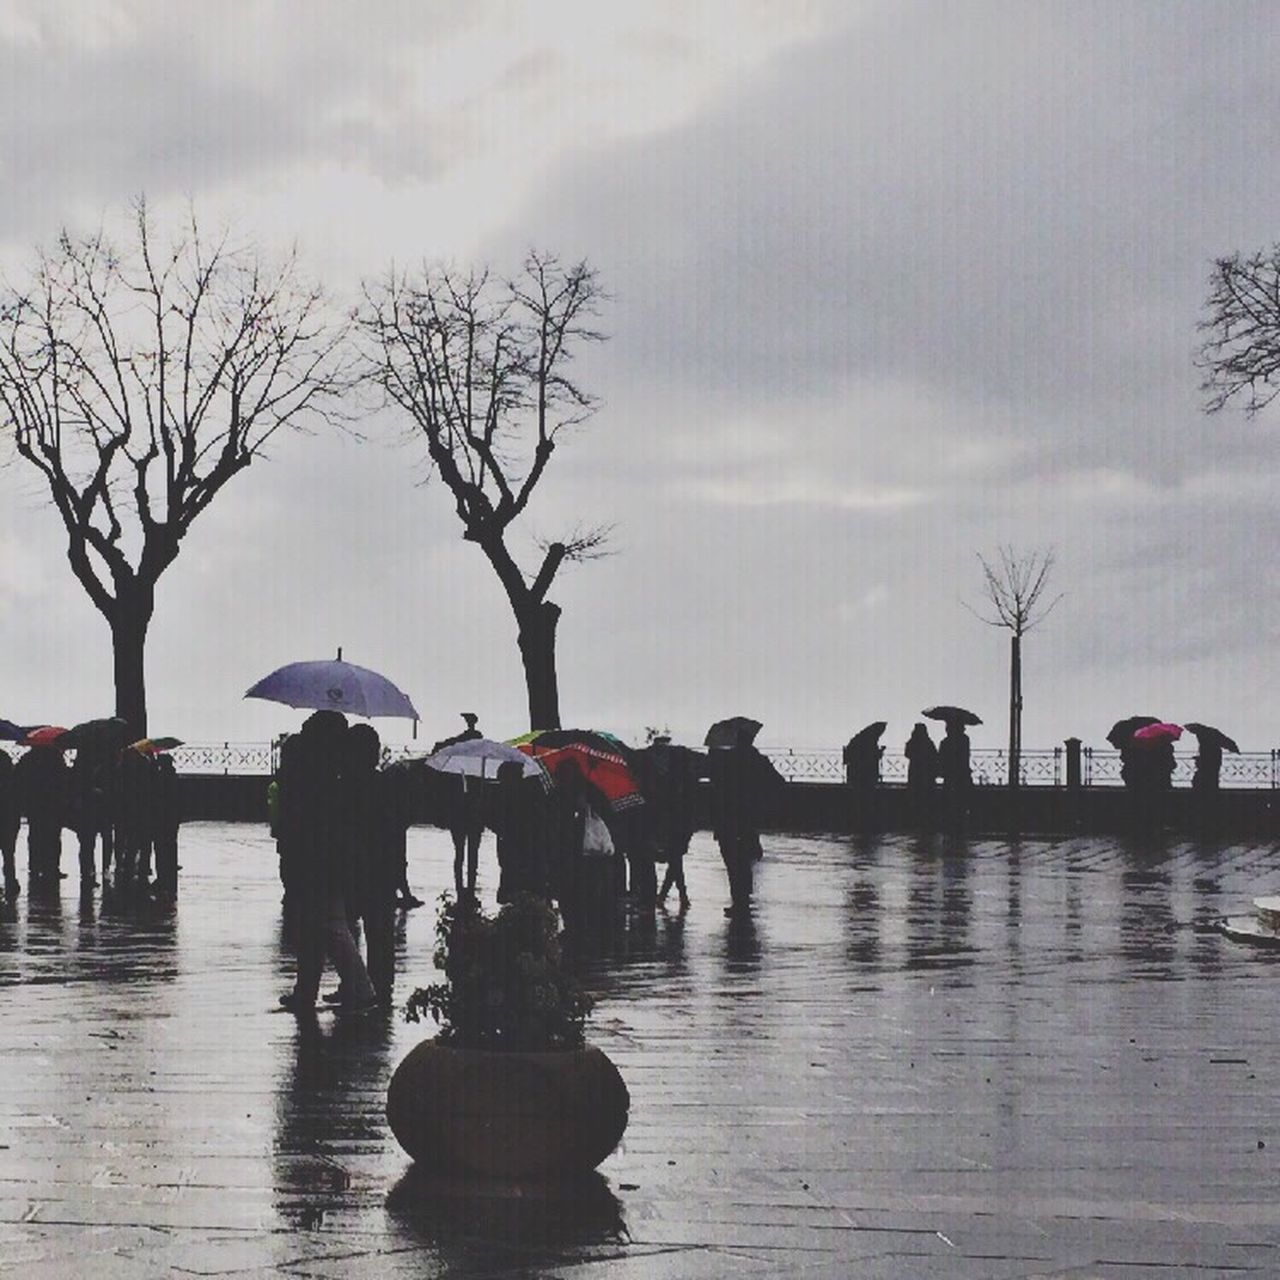 rain, weather, water, men, wet, reflection, real people, nature, outdoors, large group of people, sky, day, women, tree, flood, beauty in nature, under, mammal, people